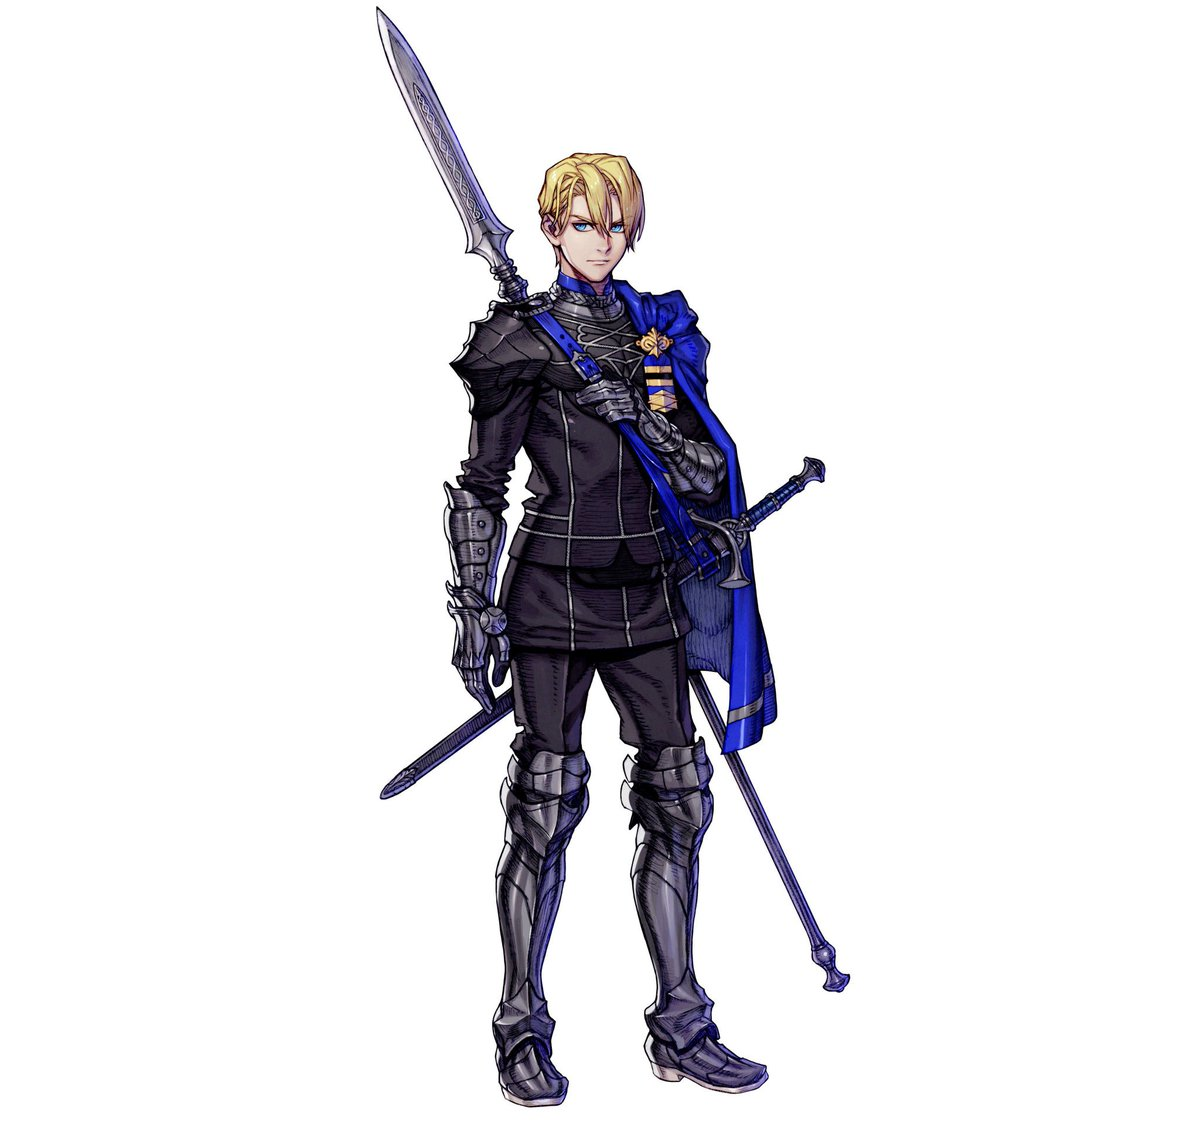 【Hero Intro: Dimitri】 Crown prince of the Holy Kingdom of Faerghus. Known for his chivalry, it seems a darkness may lurk beneath the surface. Appears in Fire Emblem: Three Houses.   Click for Hero Page:  https:// guide.fire-emblem-heroes.com/en-US/12003001 000400/   …  #FEHeroes<br>http://pic.twitter.com/7CzUpcWHbE